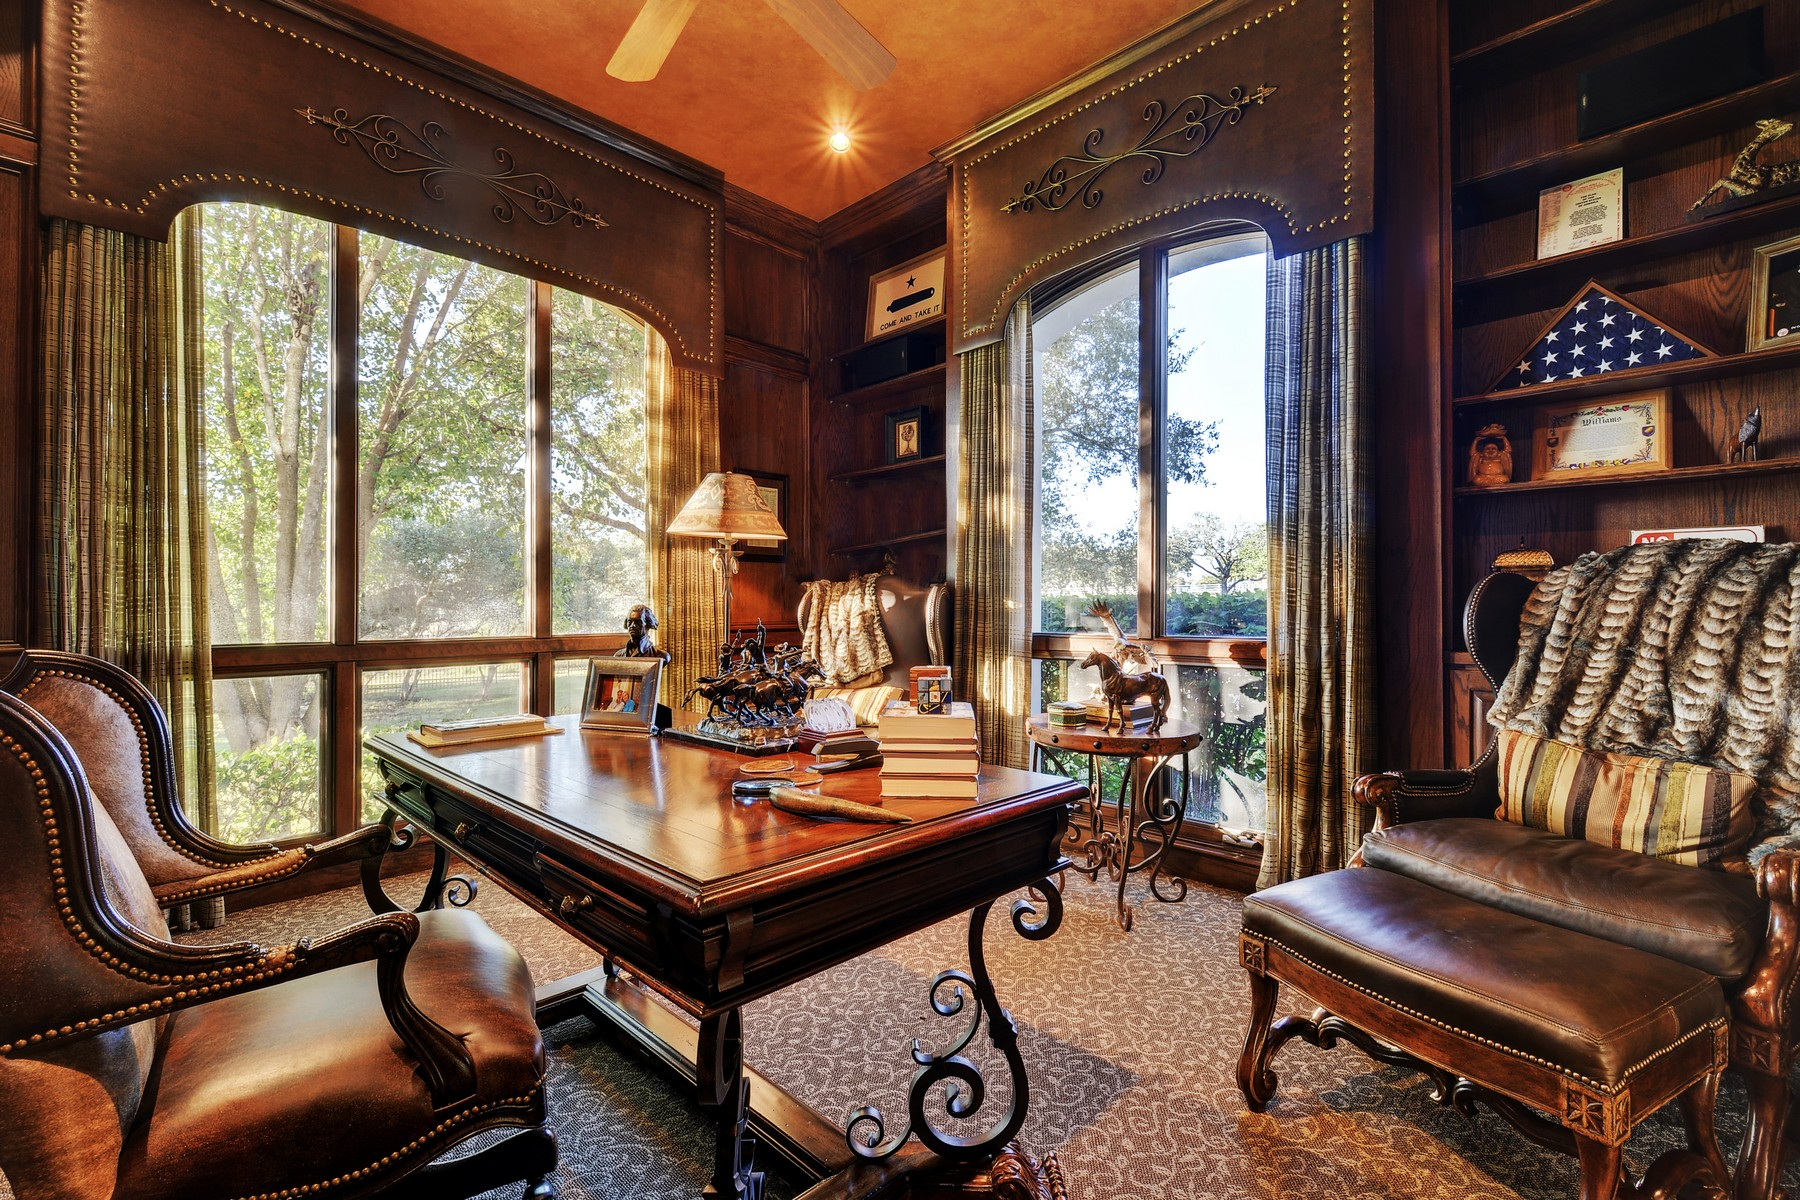 Additional photo for property listing at Luxurious Home on 37 Acres 25211 State Hwy 71 W Spicewood, Texas 78669 Estados Unidos